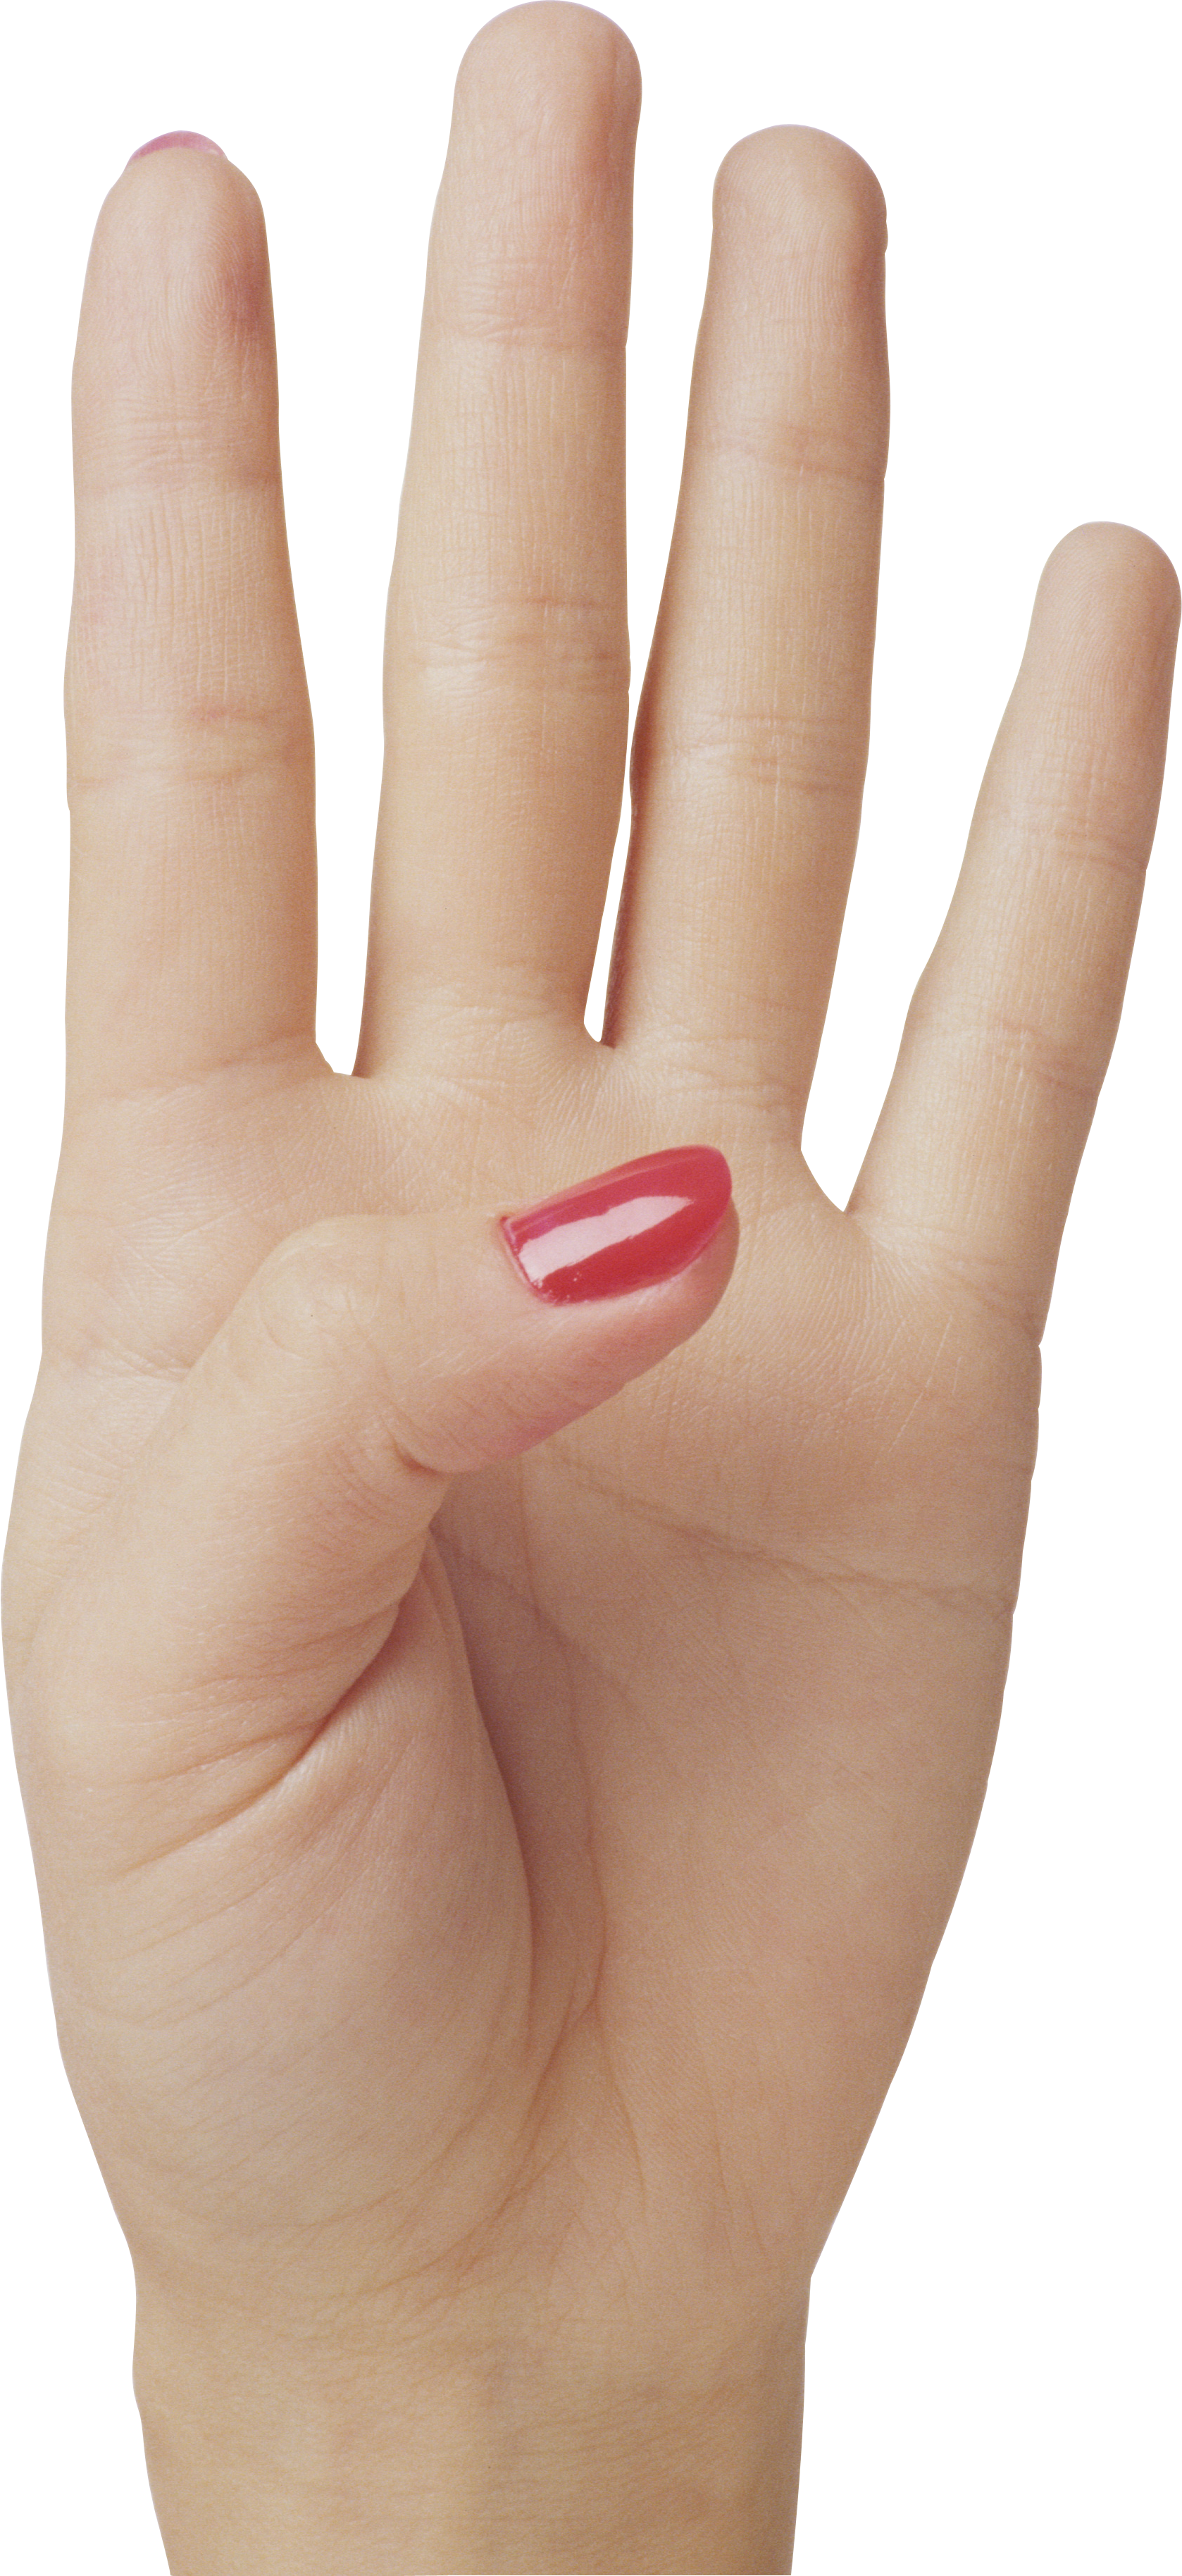 4 finger png. Four hand image purepng